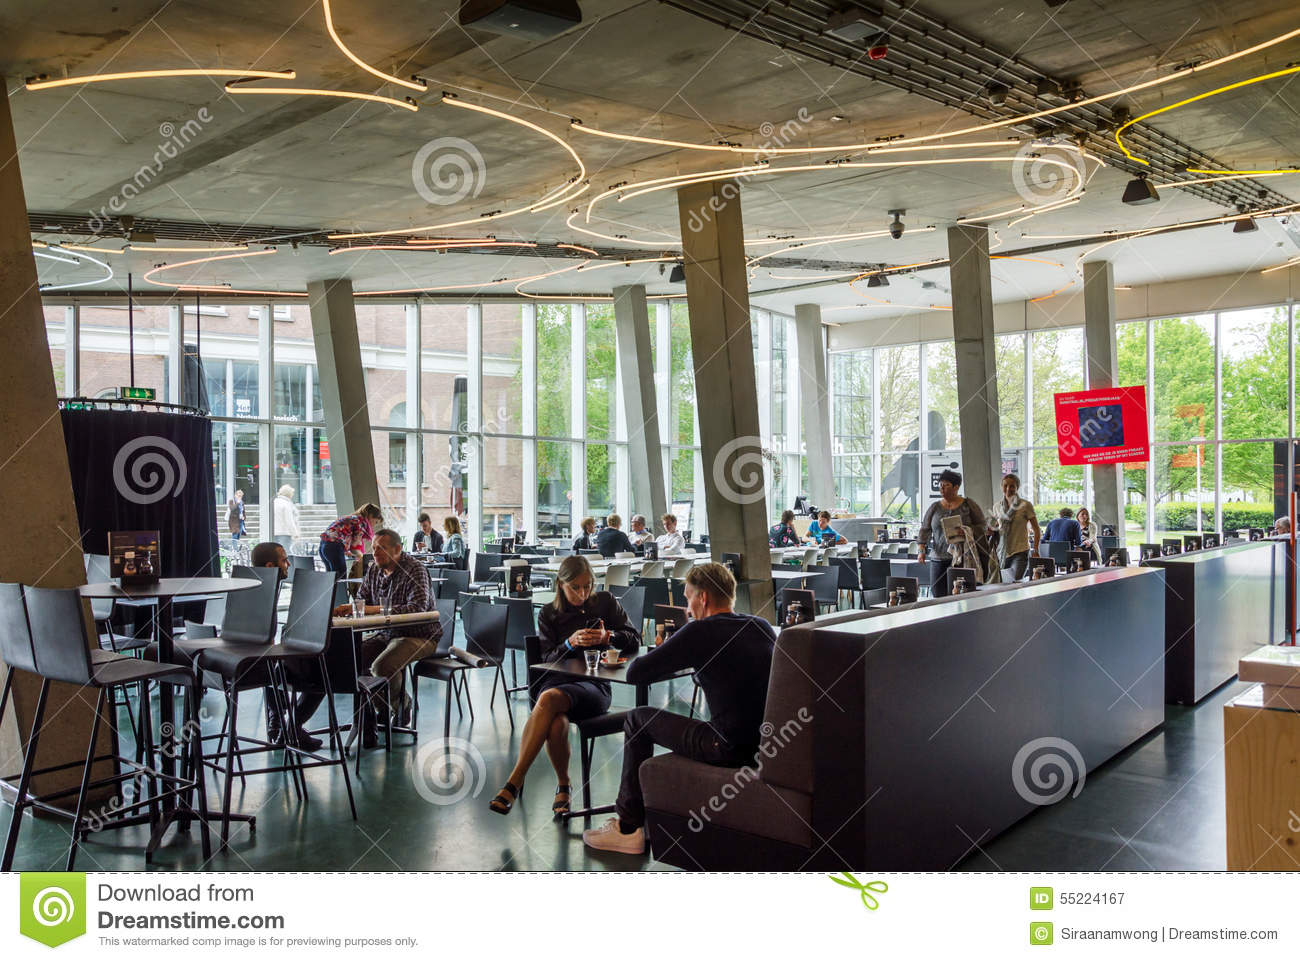 Rotterdam netherlands may 9 2015 people at cafeteria for Materiel culture interieur